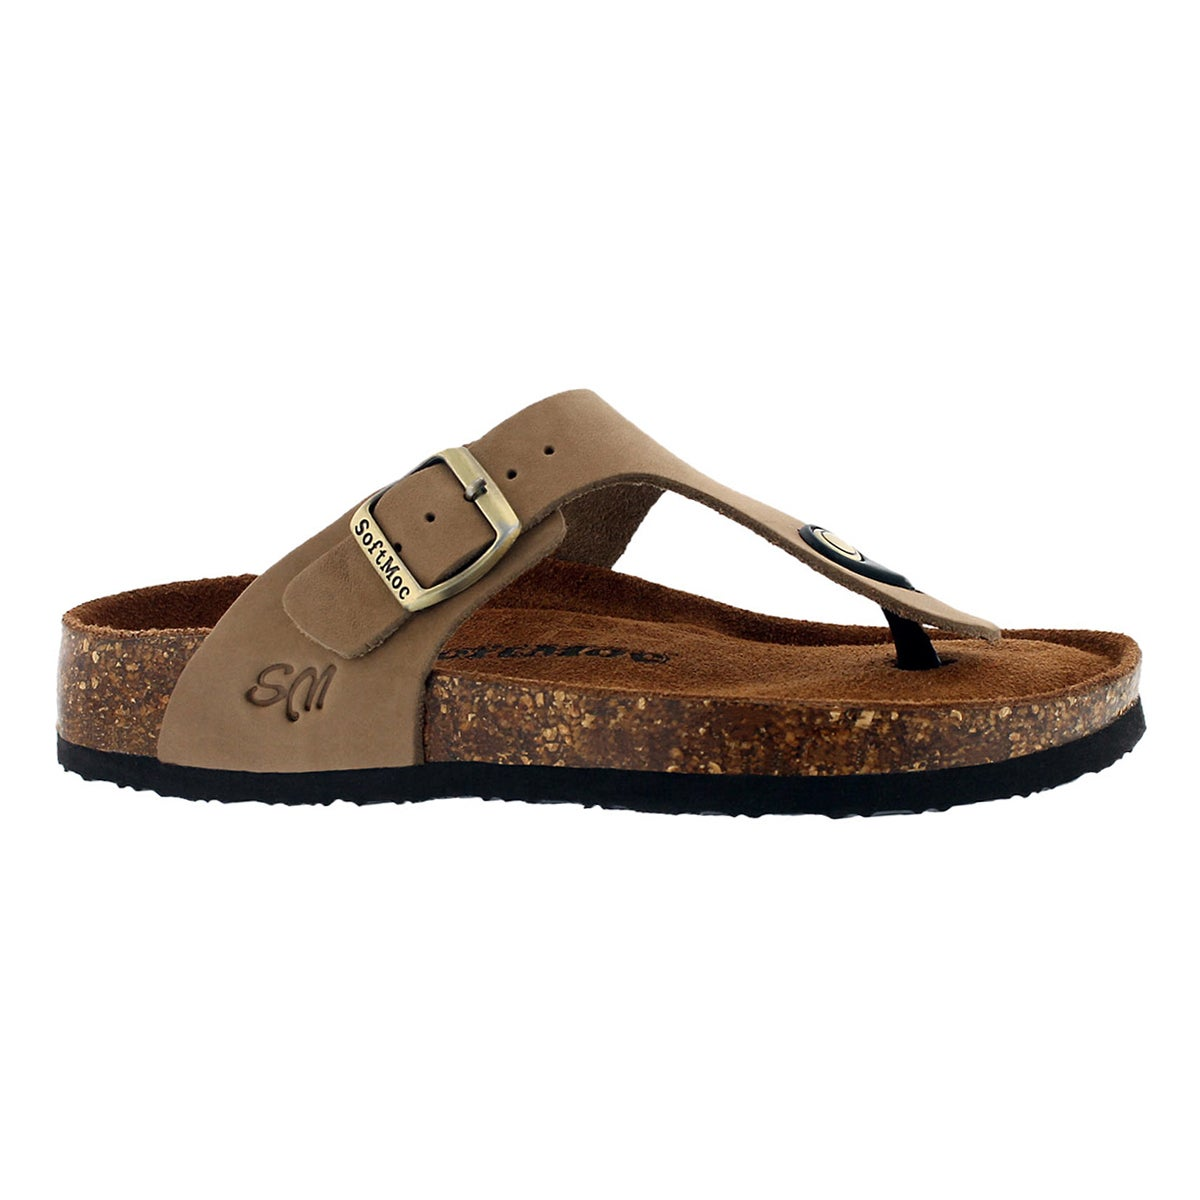 Women's ANGY 5 taupe memory foam thong sandals